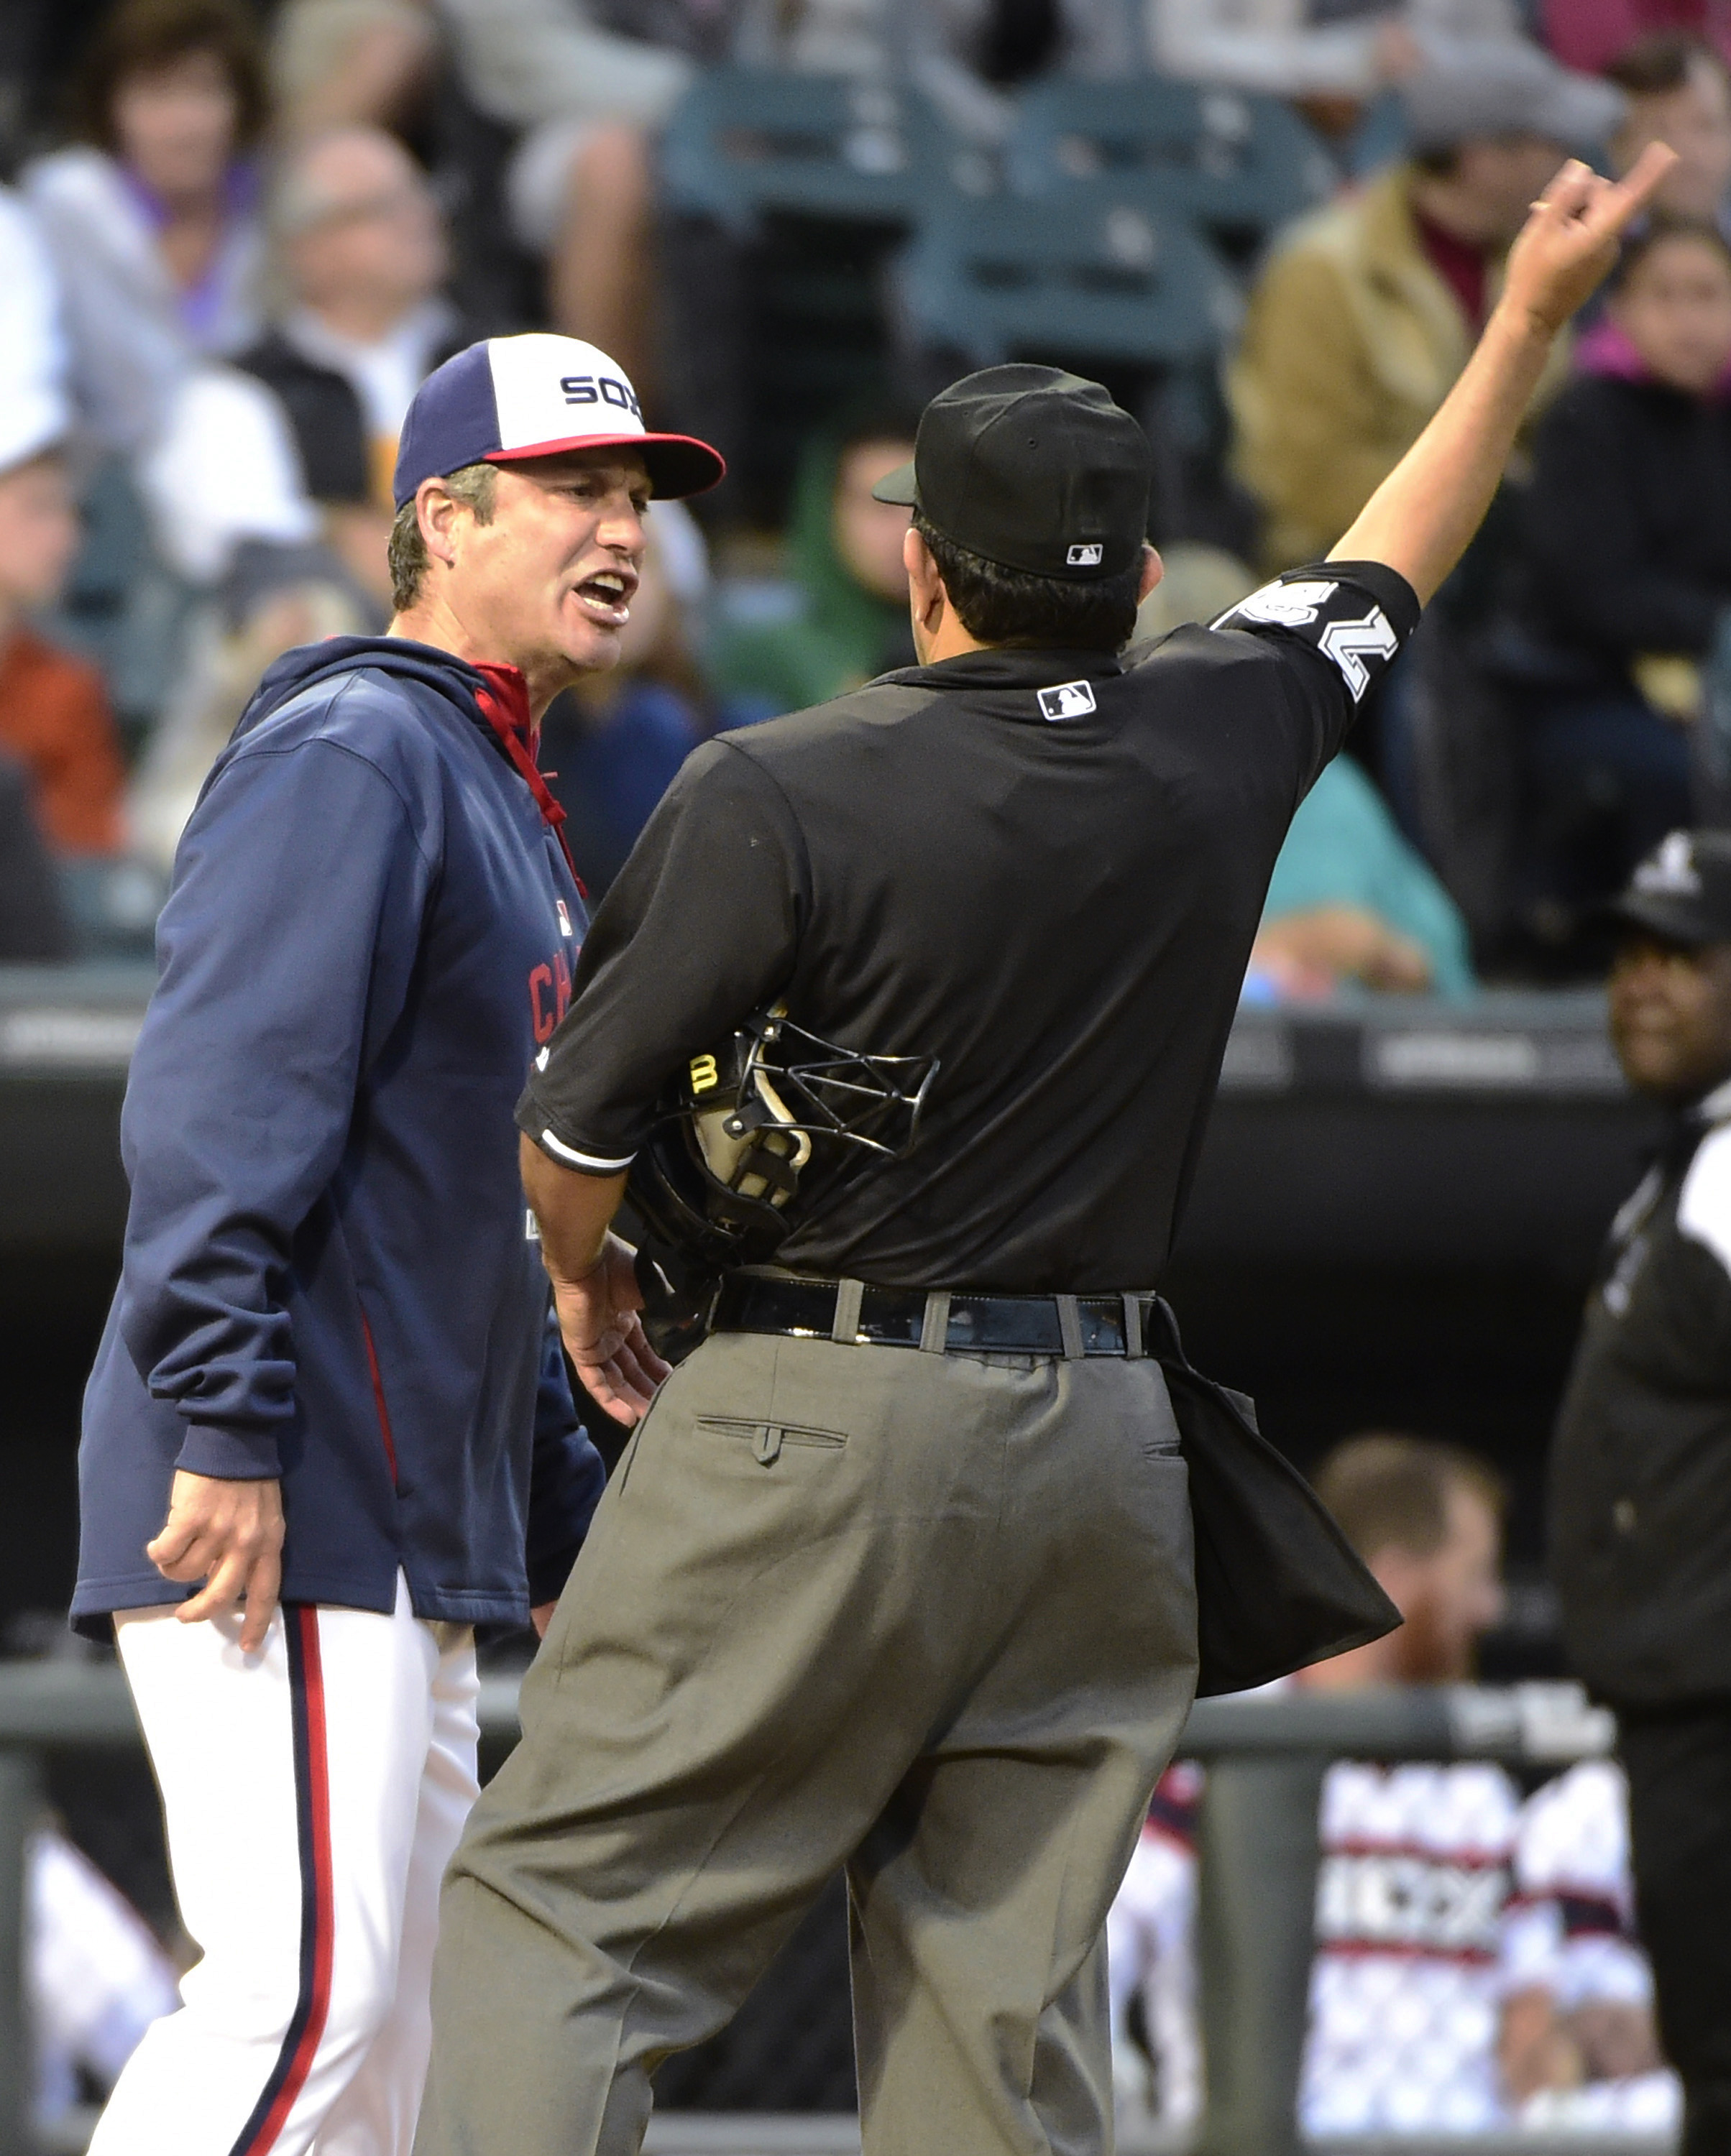 Chicago White Sox manager Robin Ventura, left, is thrown out of the game for arguing a call with home plate umpire Alfonso Marquez during the fourth inning of a baseball game against the Pittsburgh Pirates, Wednesday, June 17, 2015, in Chicago. (AP Photo/